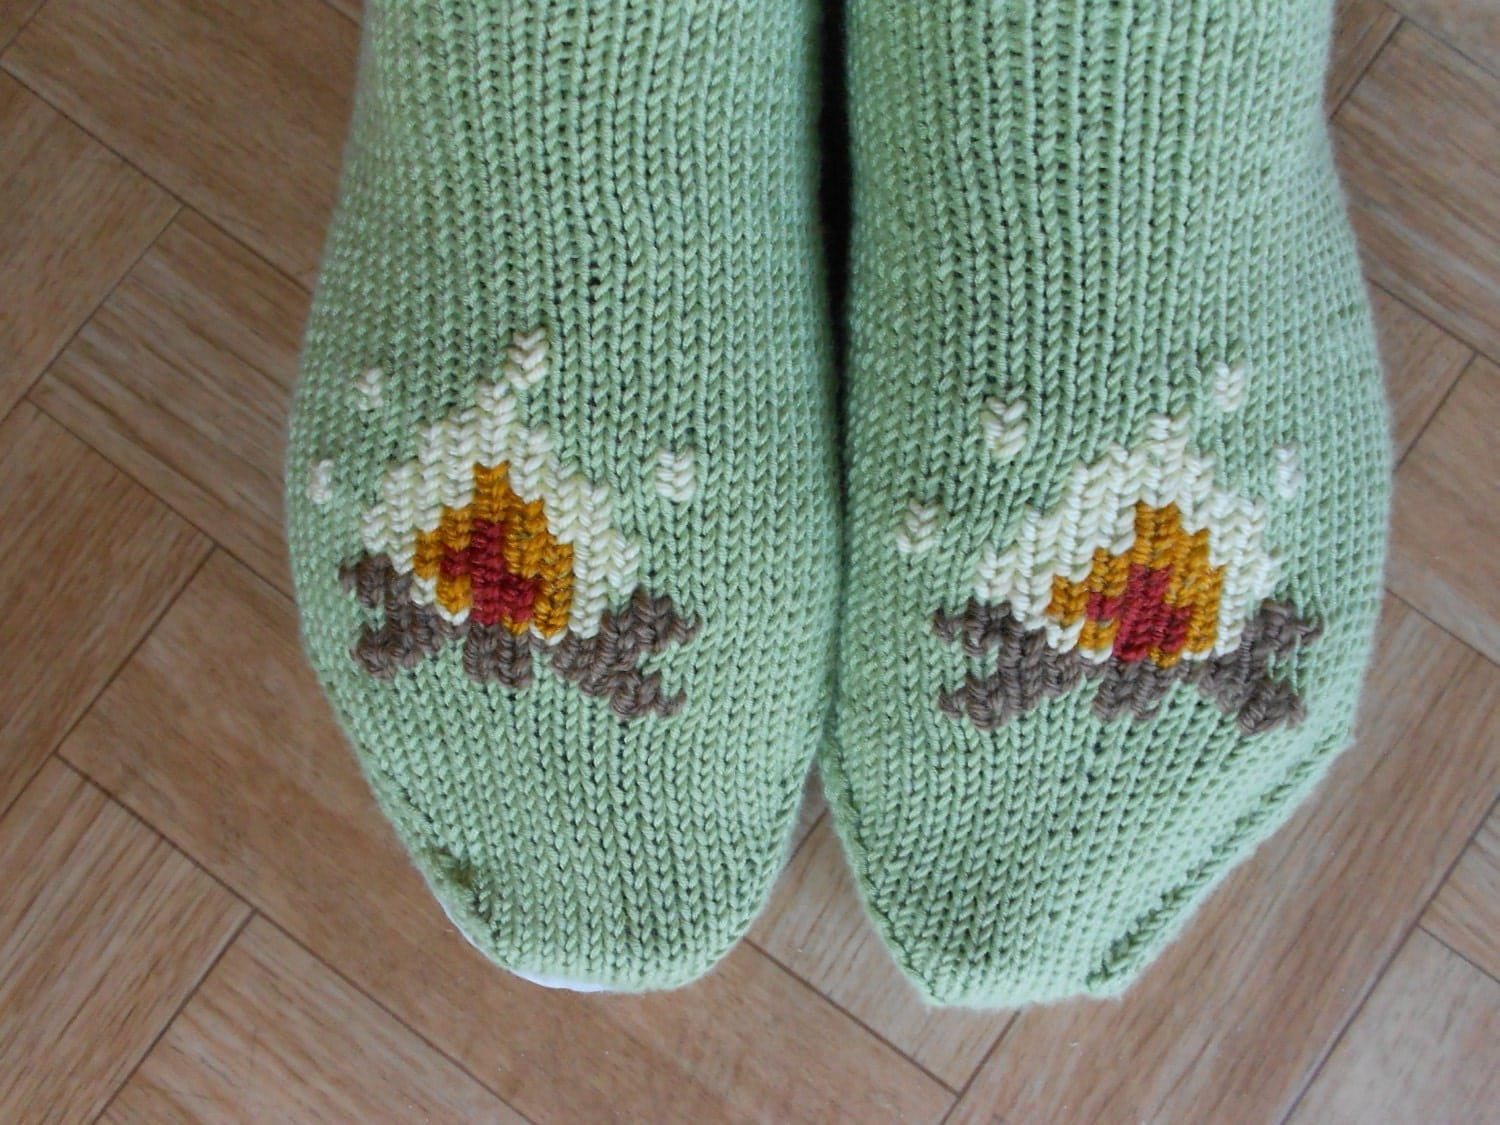 Slipper Patterns Knitting : Slippers knitting pattern Knit slippers by CuteCreationsByLea